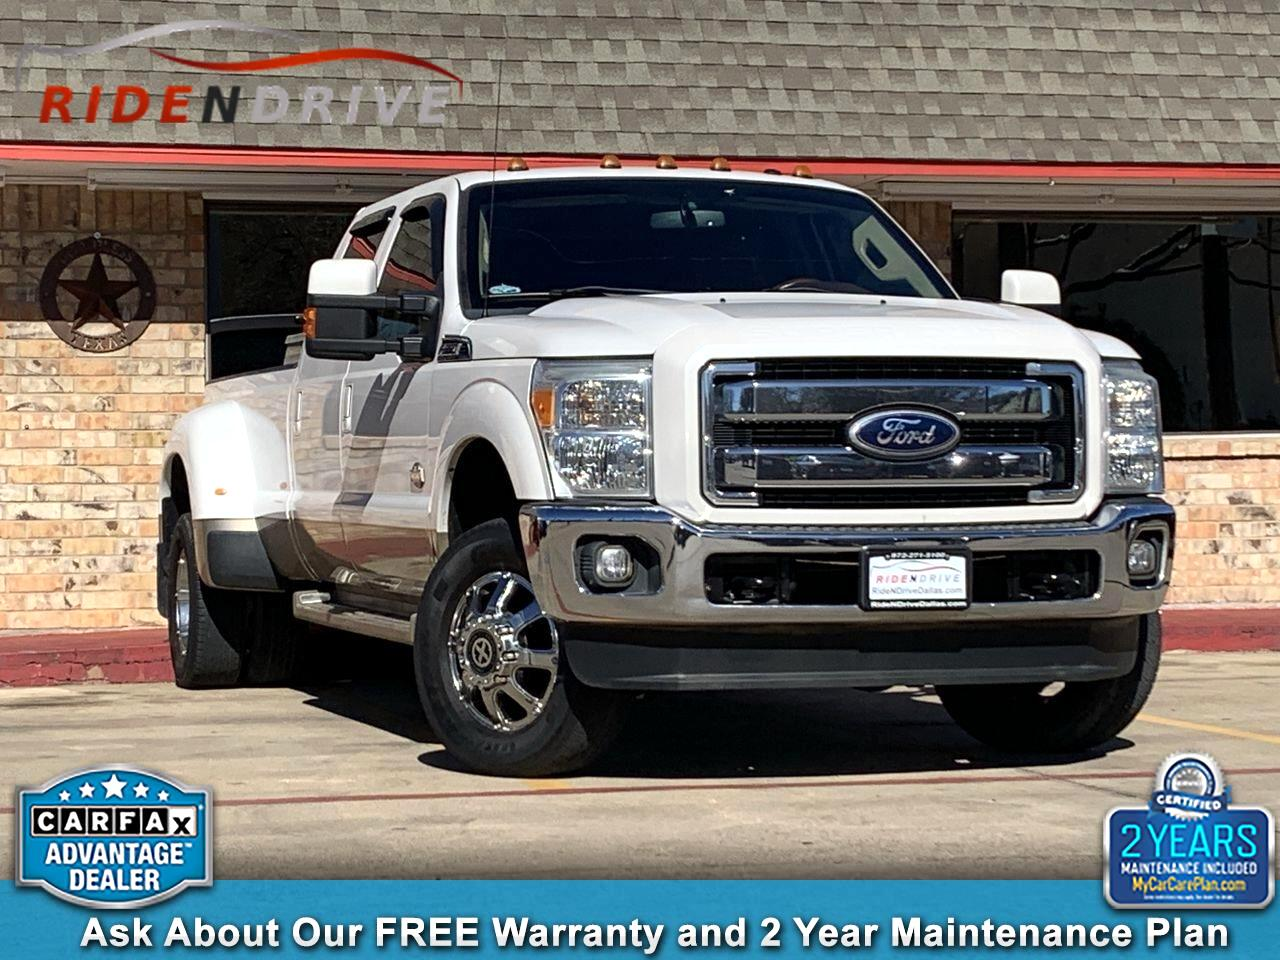 "2011 Ford Super Duty F-350 DRW 4WD Crew Cab 172"" King Ranch"